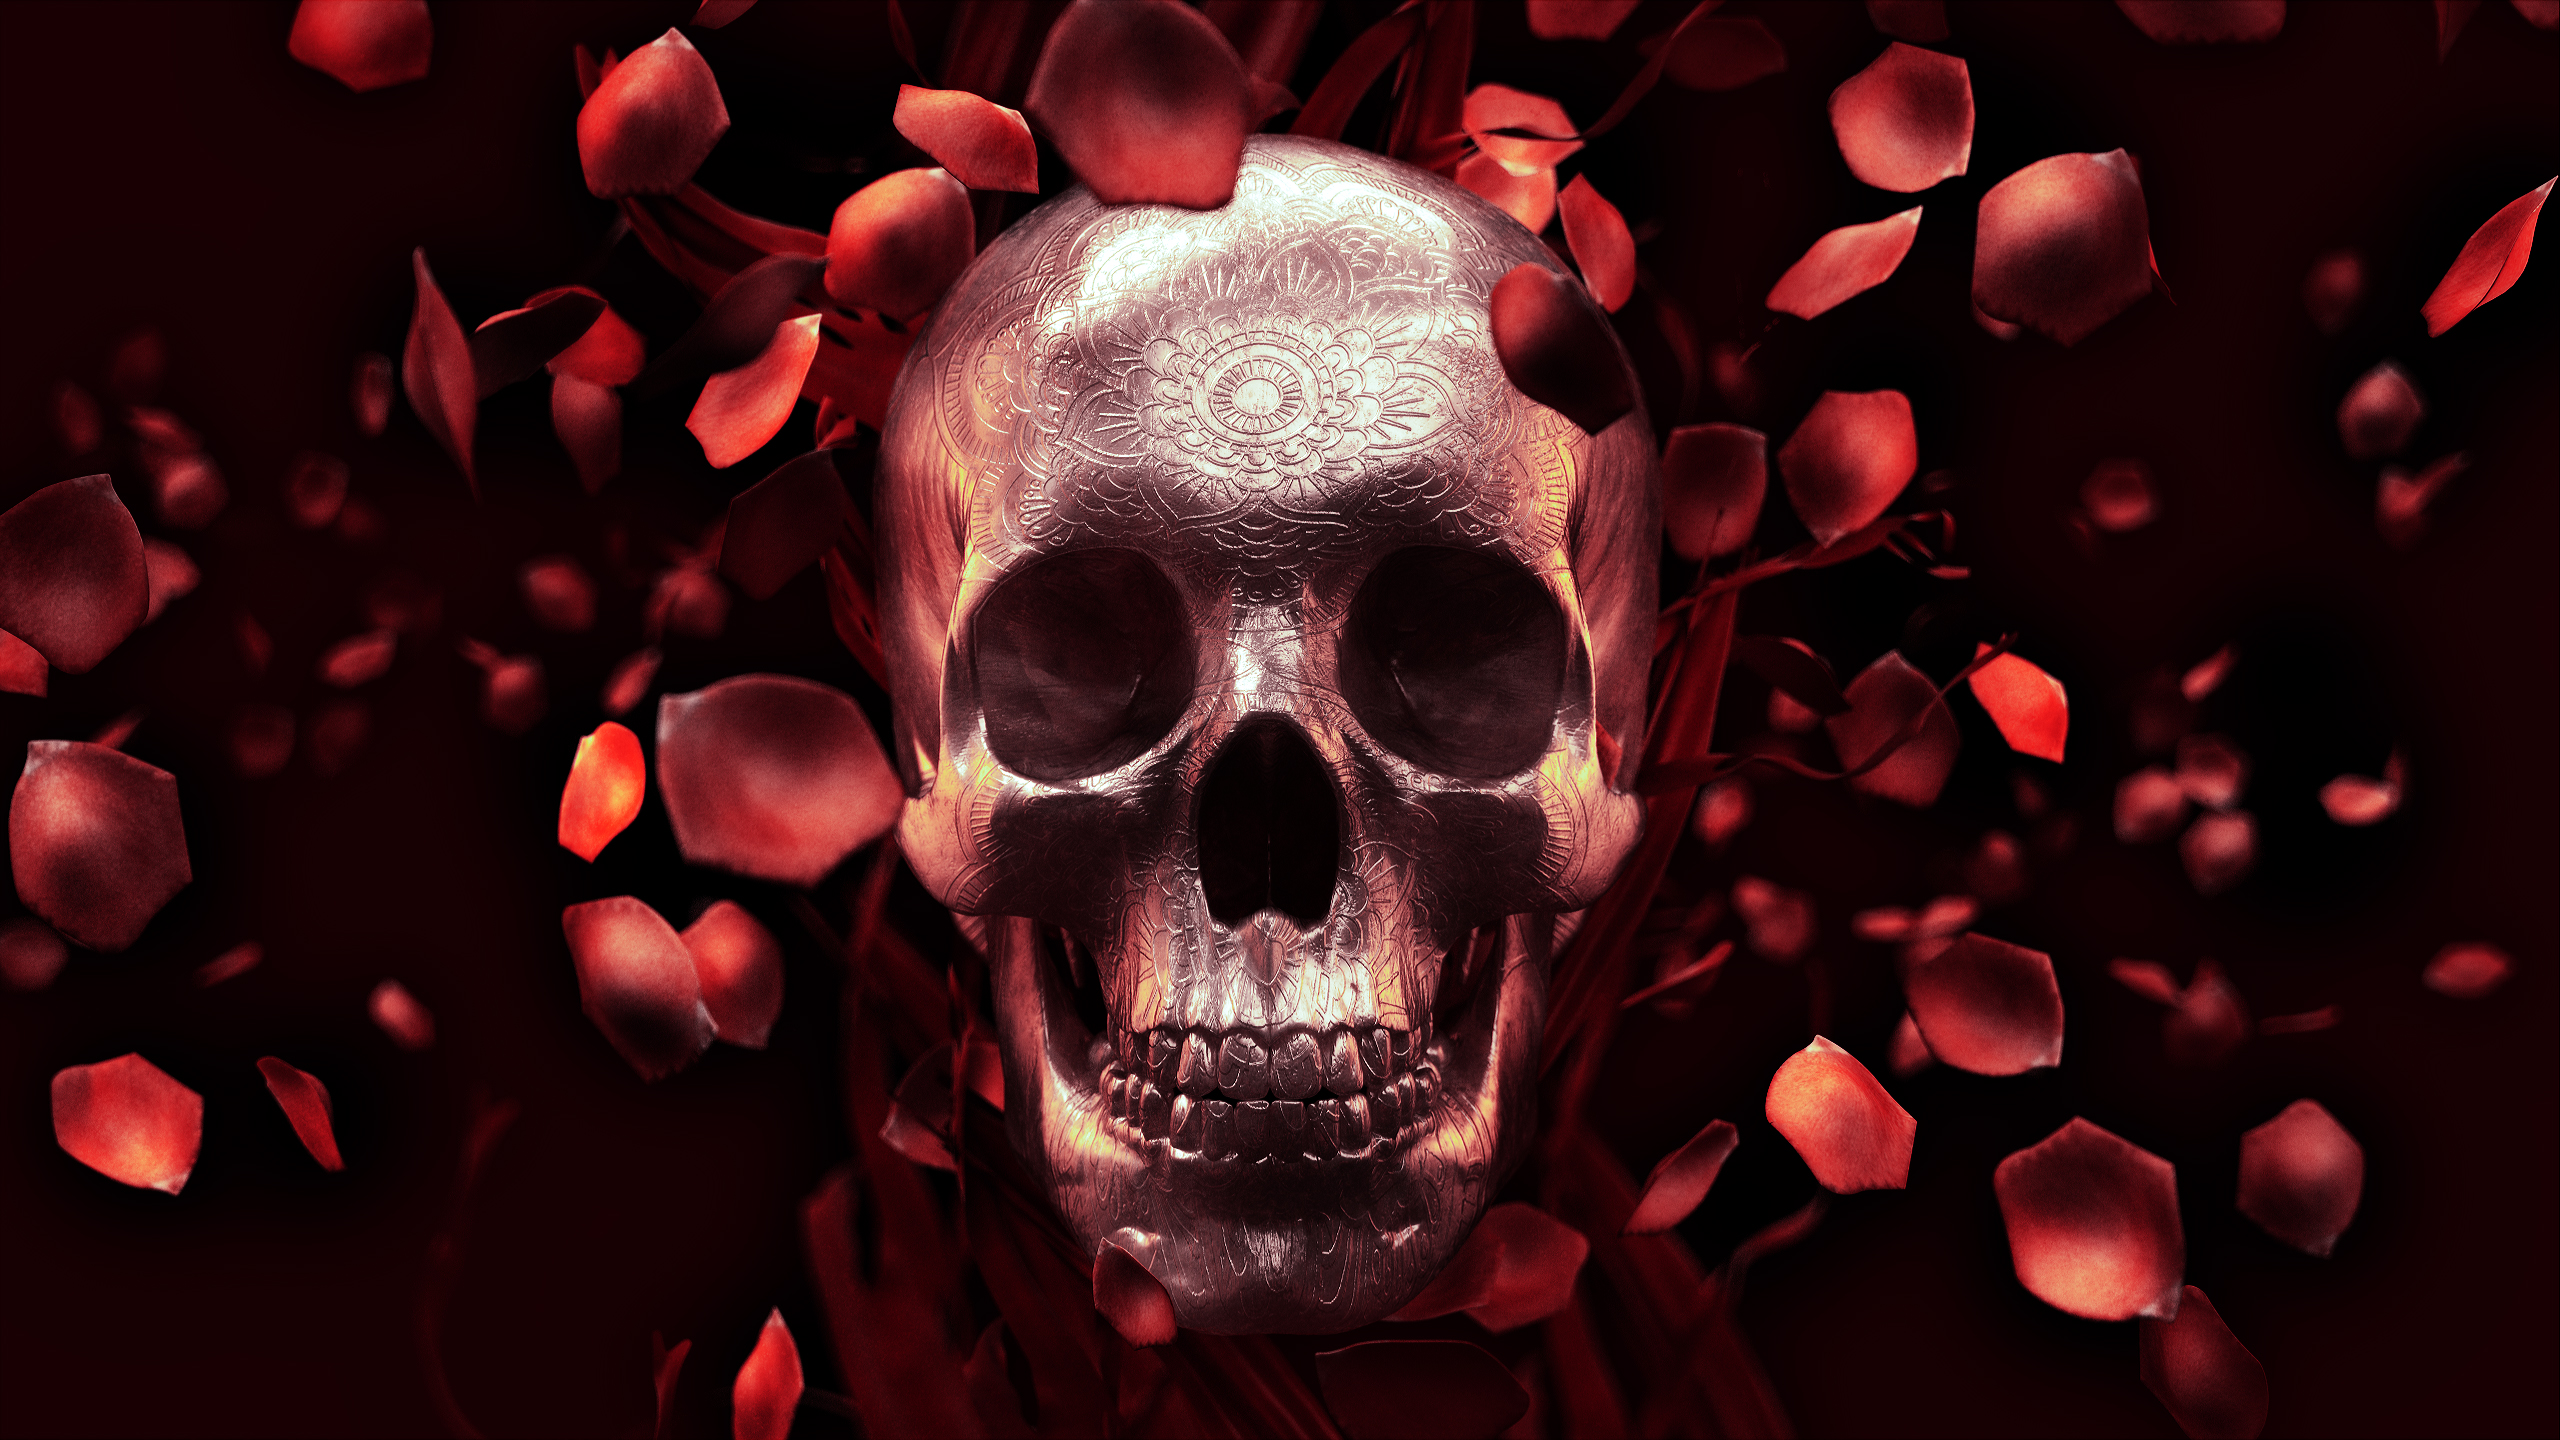 skull and roses wallpapers - photo #2